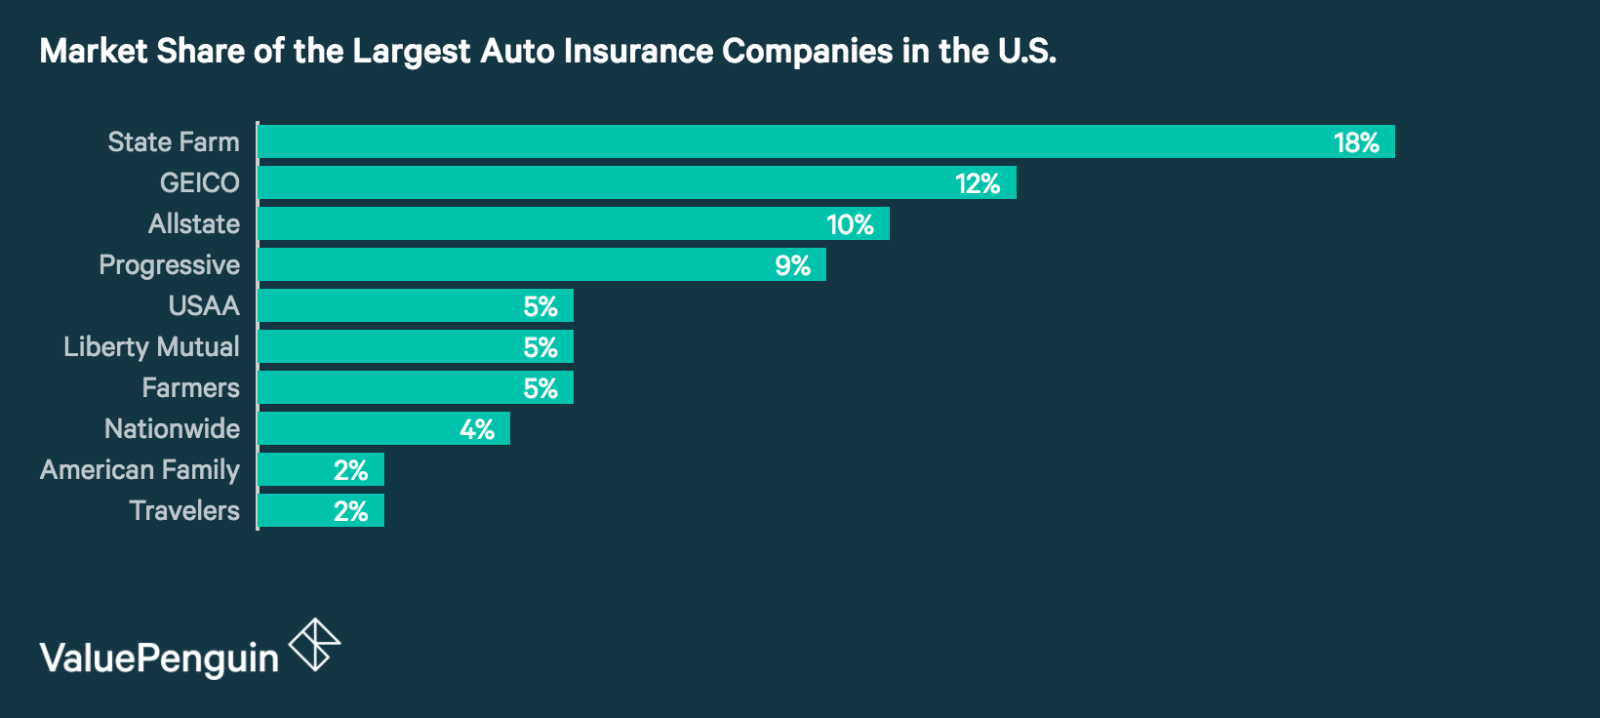 Market Share of the Largest Auto Insurance Companies in the United States